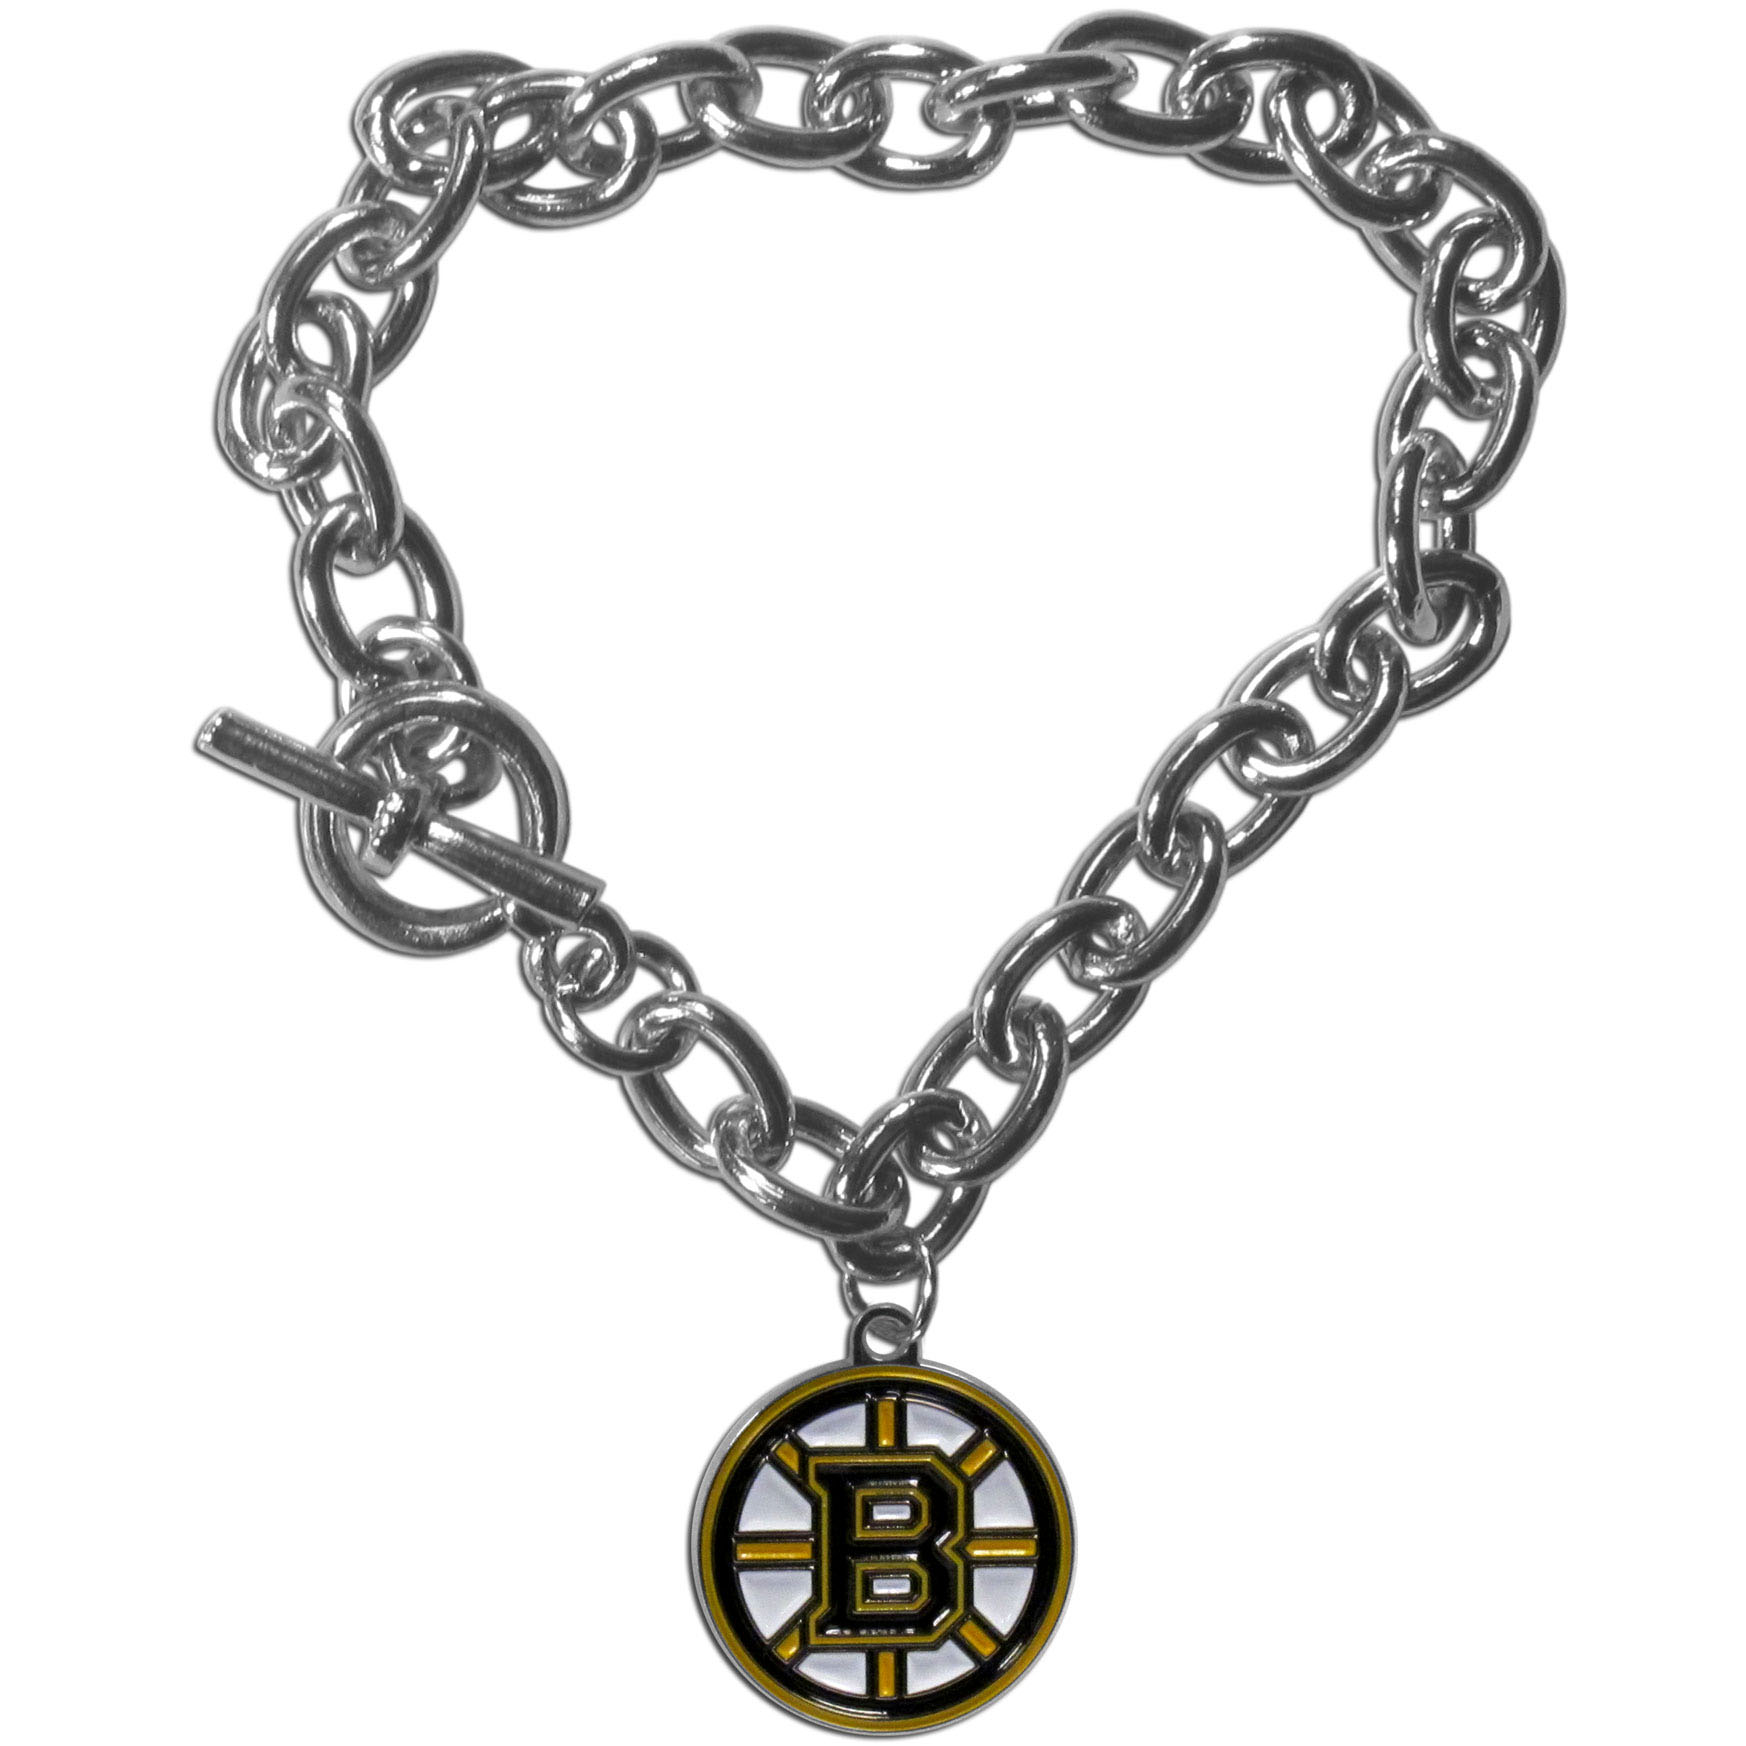 Boston Bruins® Charm Chain Bracelet - Our classic single charm bracelet is a great way to show off your team pride! The 7.5 inch large link chain features a high polish Boston Bruins® charm and features a toggle clasp which makes it super easy to take on and off.